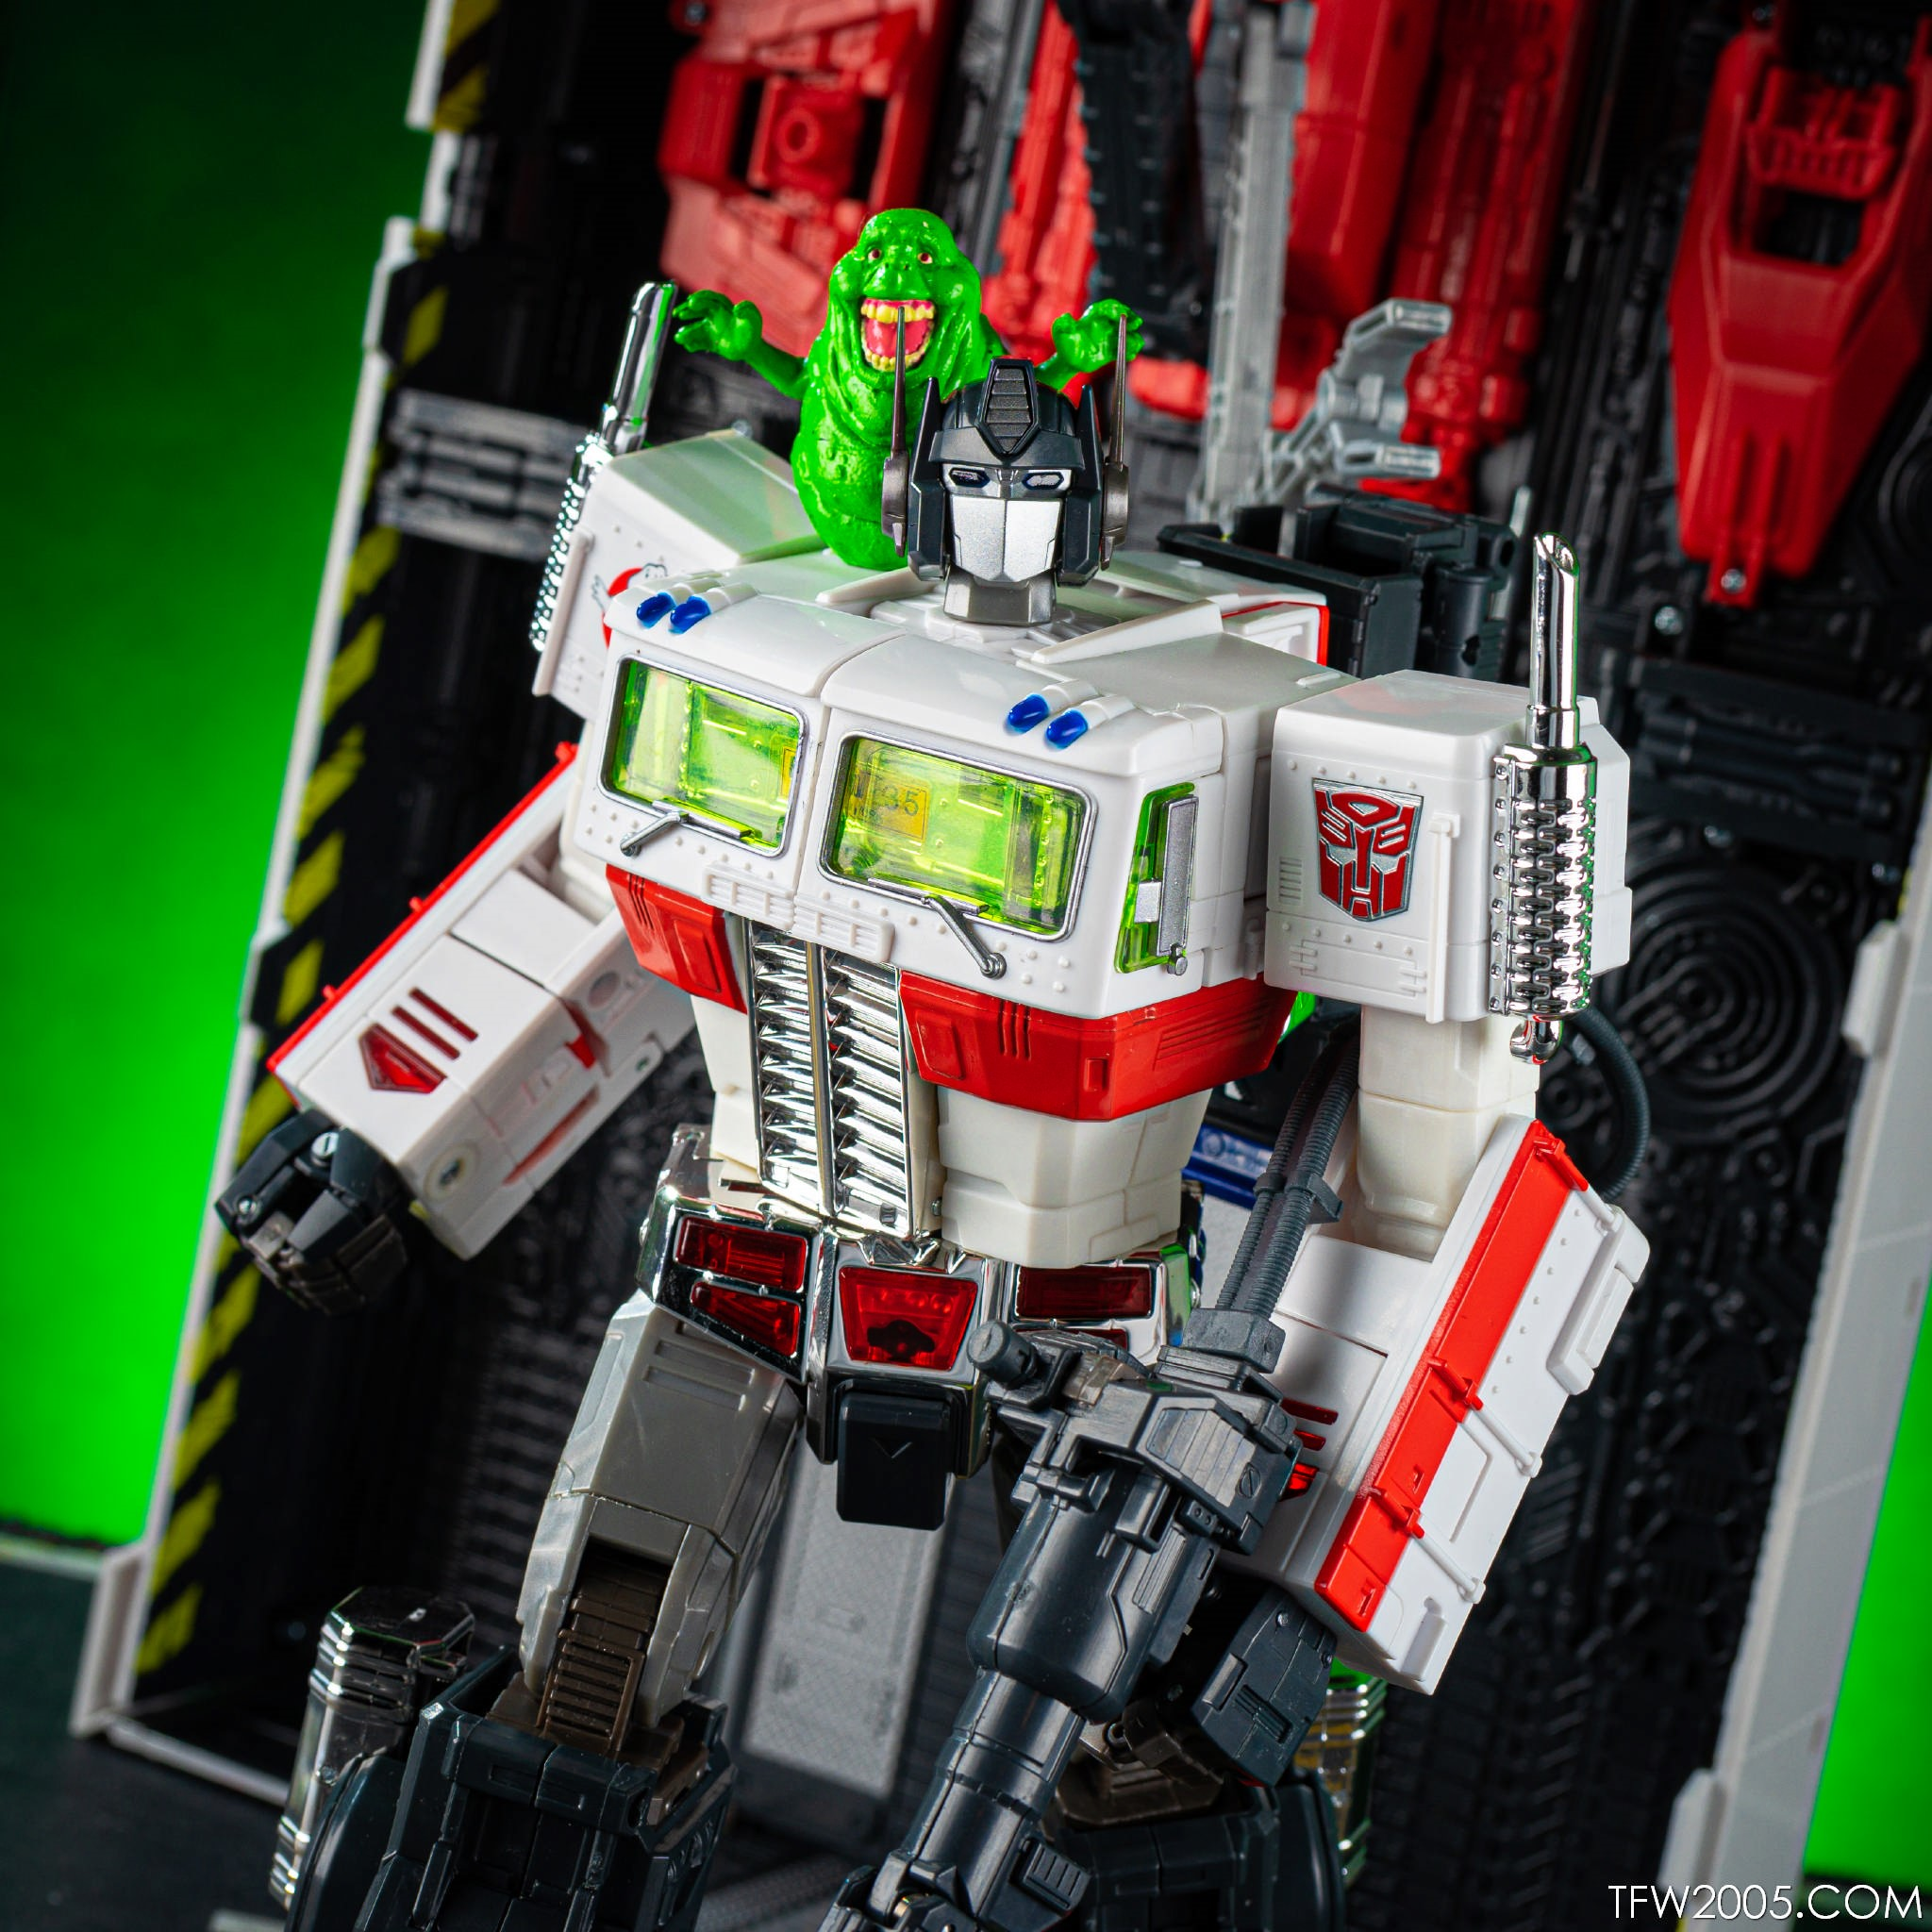 SDCC 2019 Transformers Exclusives: Available on Hasbro Pulse 9/4